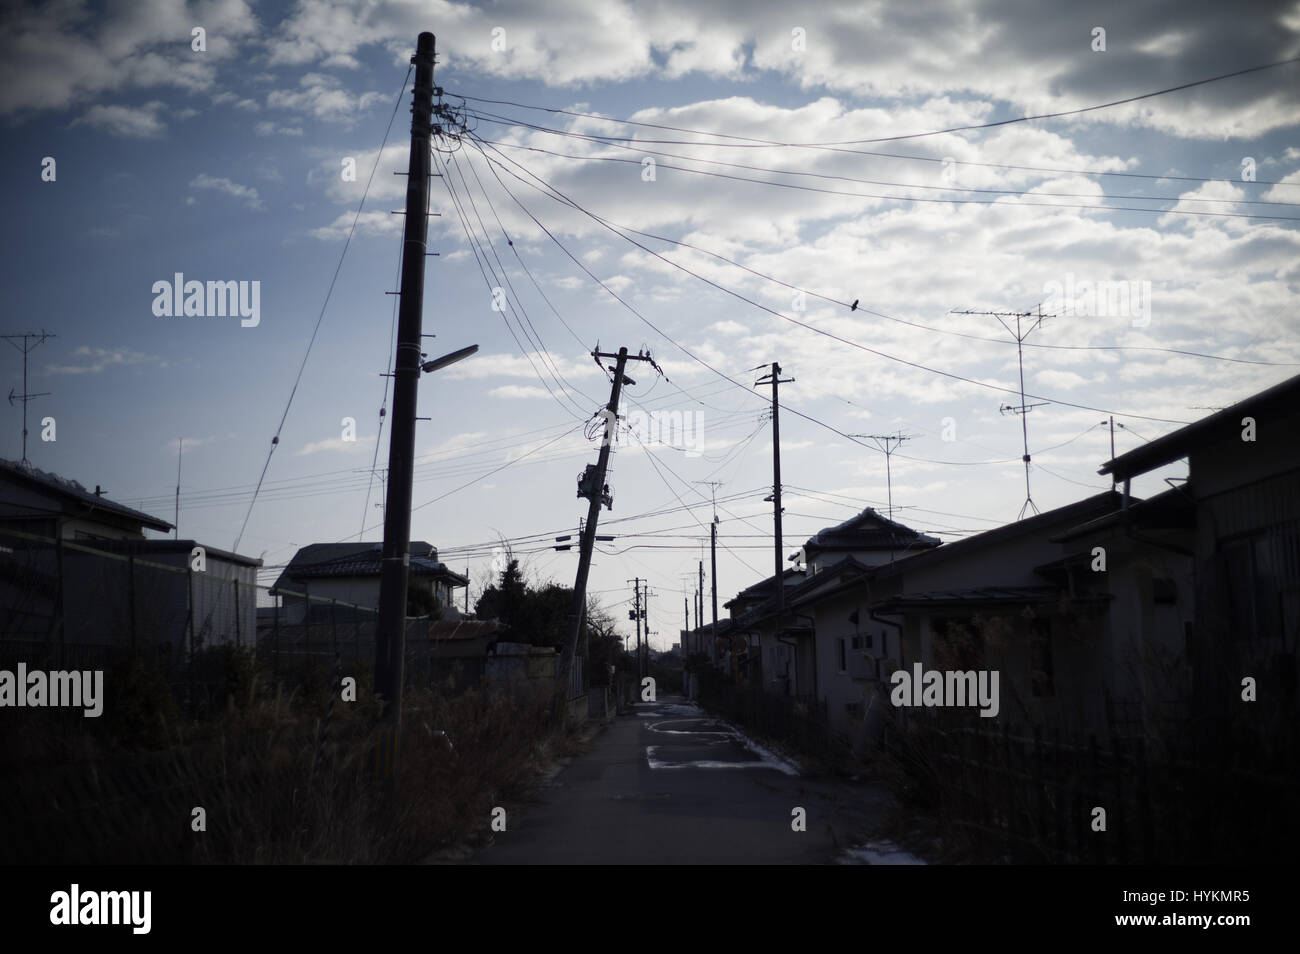 OTAMA VILLAGE, FUKUSHIMA: ONE FAMILY'S five-year struggle to overcome the Fukushima disaster by living in the radiation - Stock Image